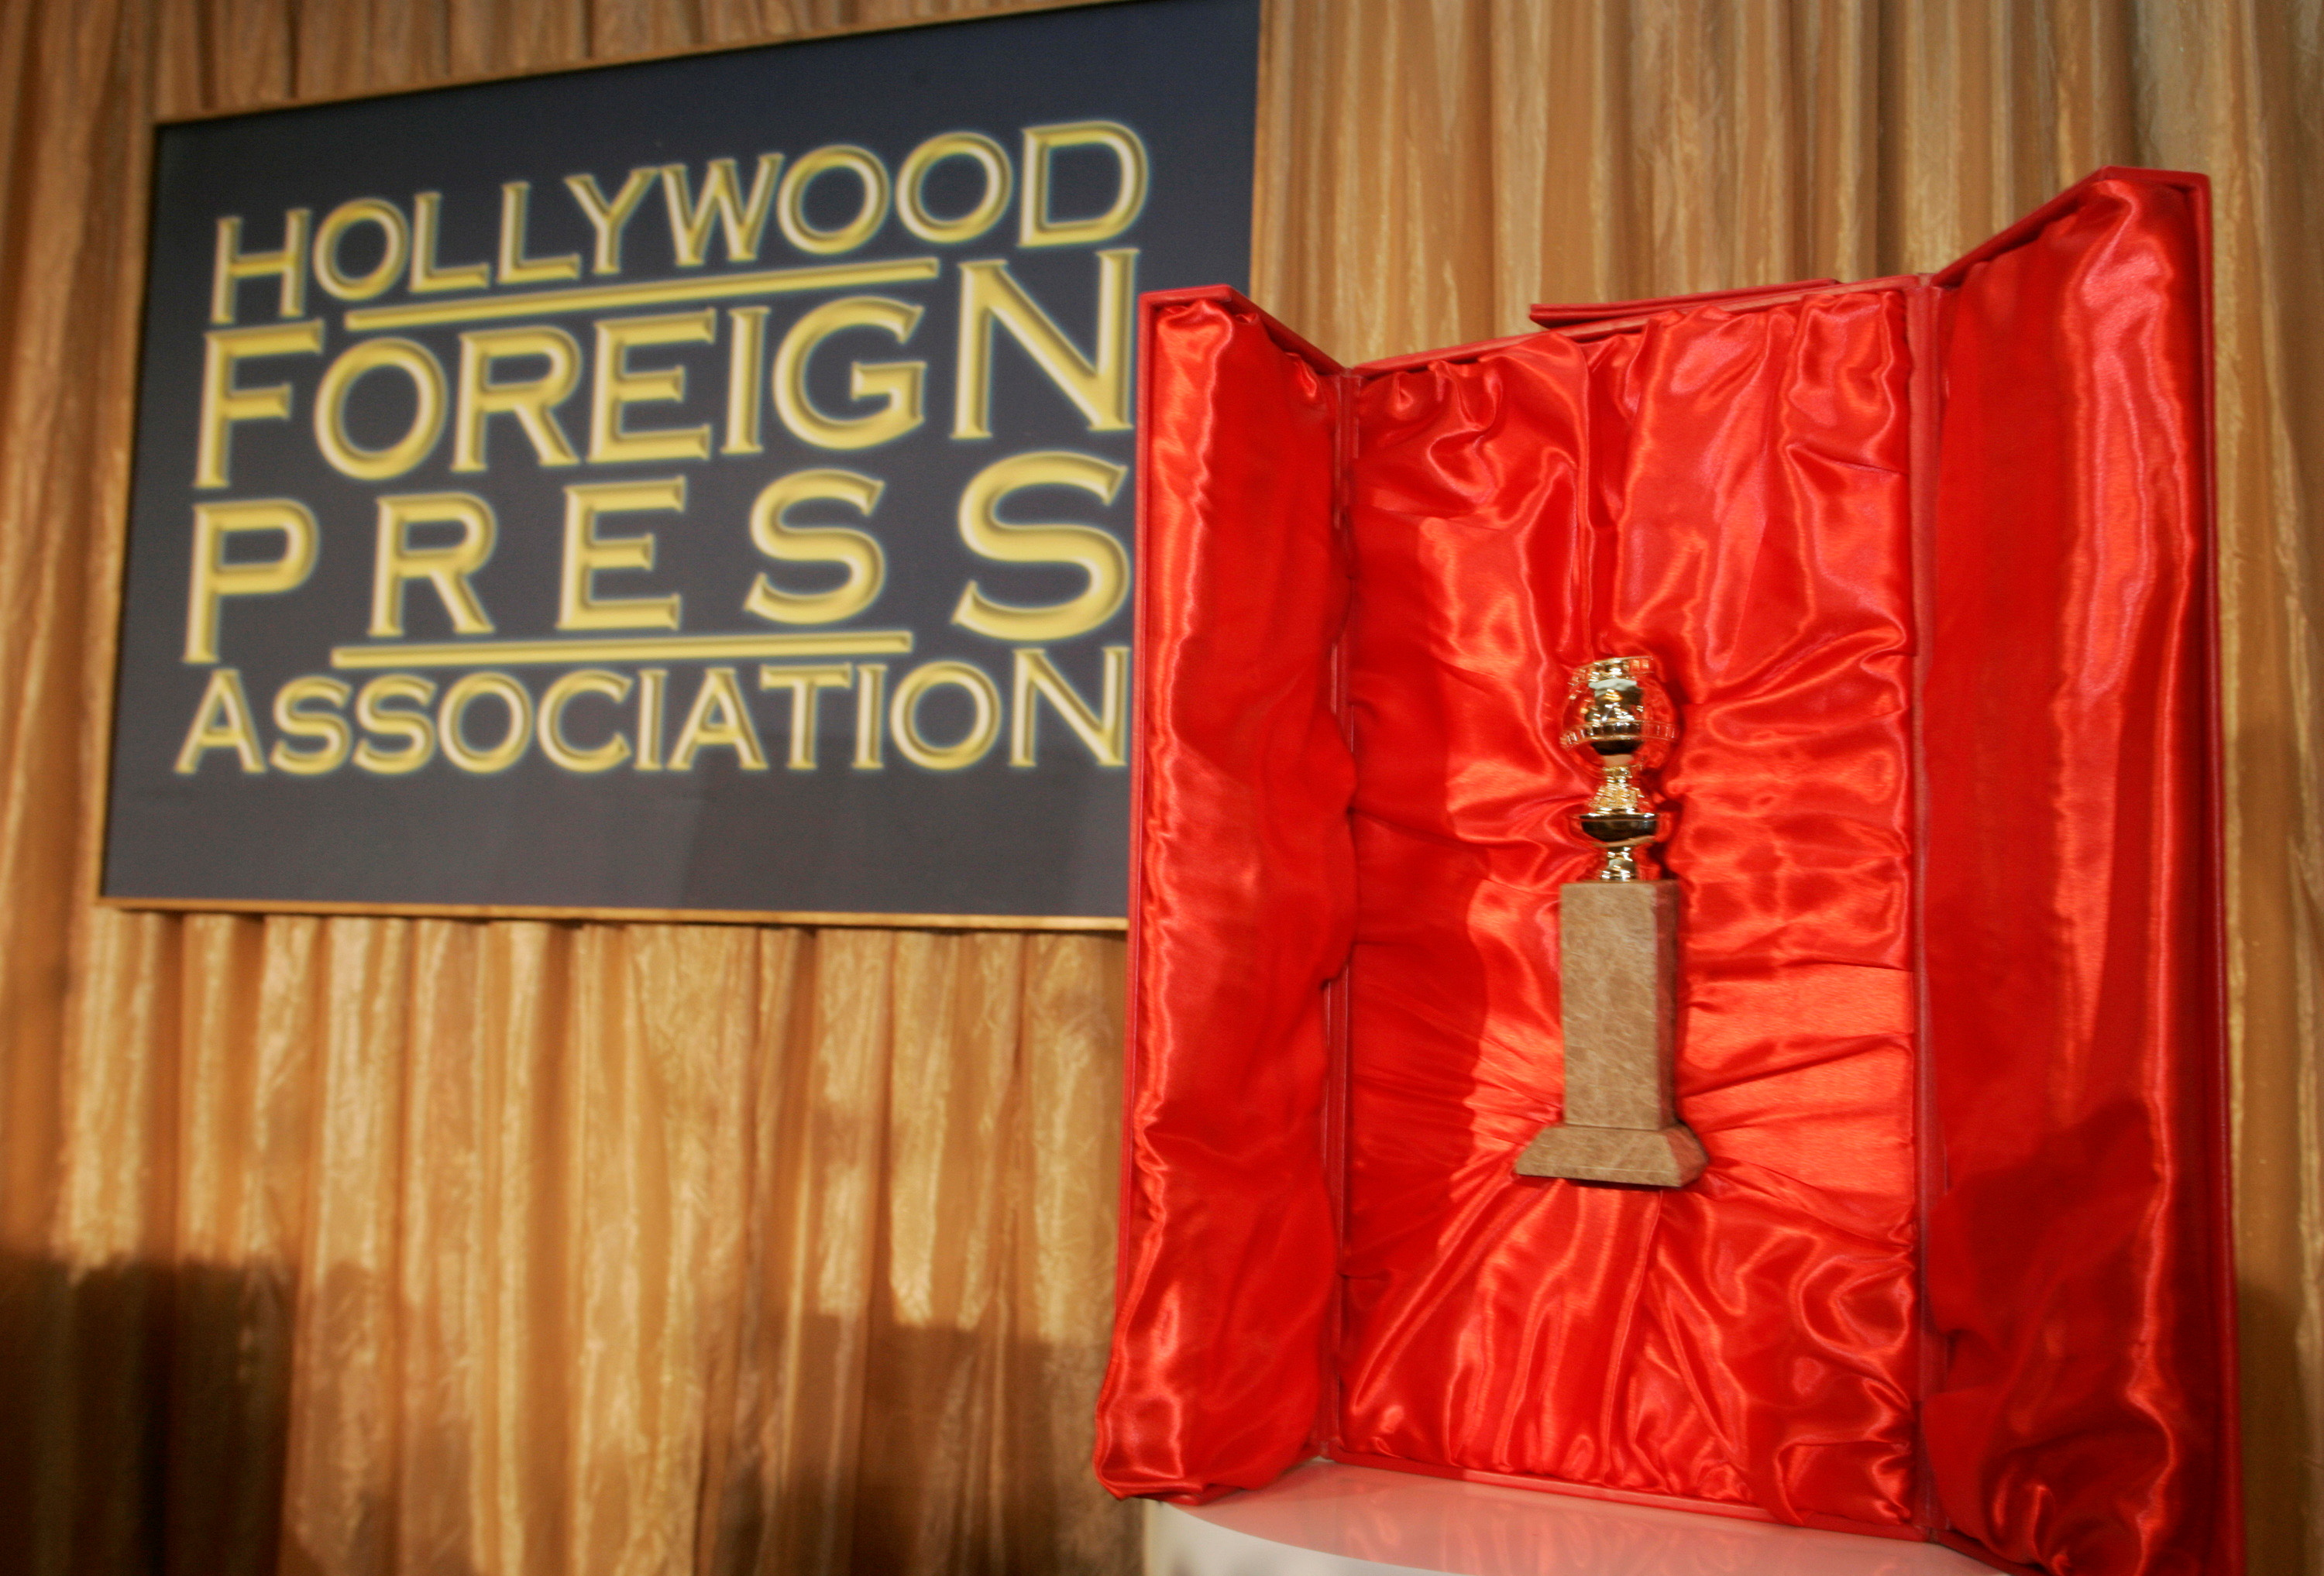 The Hollywood Foreign Press Association's Golden Globe statuette is seen with its red velvet-lined, leather-bound chest during a news conference in Beverly Hills, California January 6, 2009. REUTERS/Fred Prouser